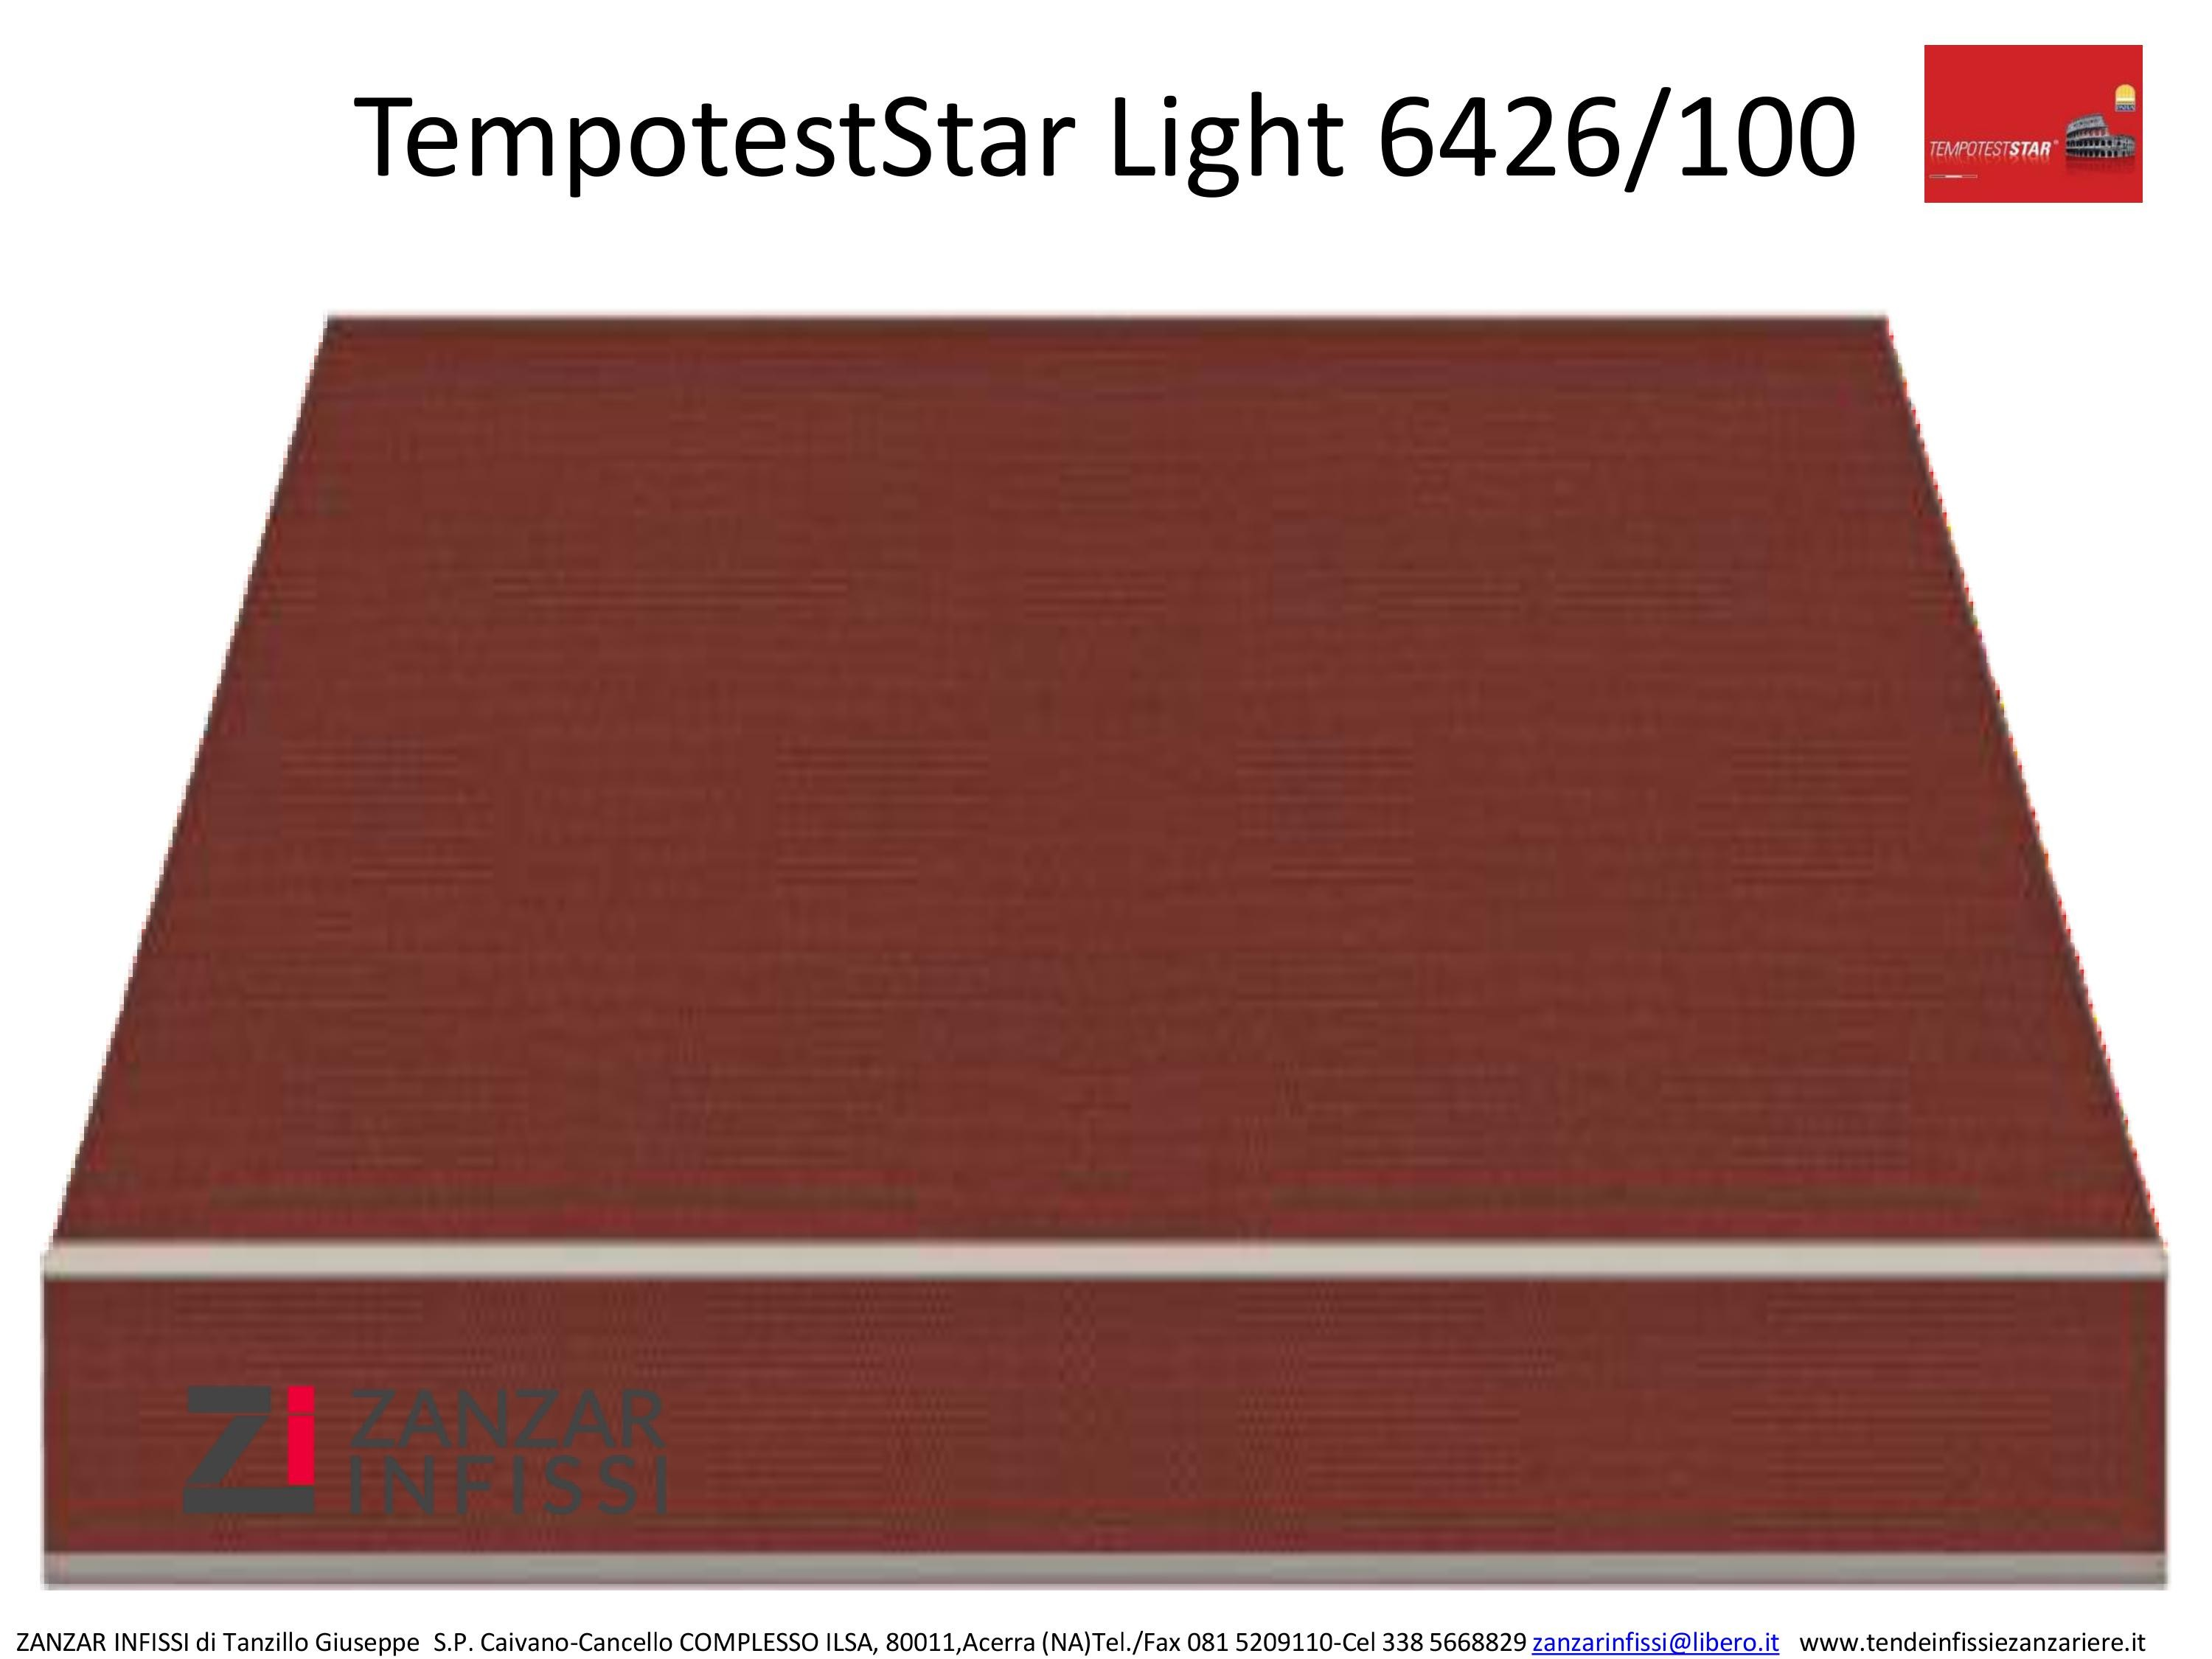 Tempotest star light 6426/100